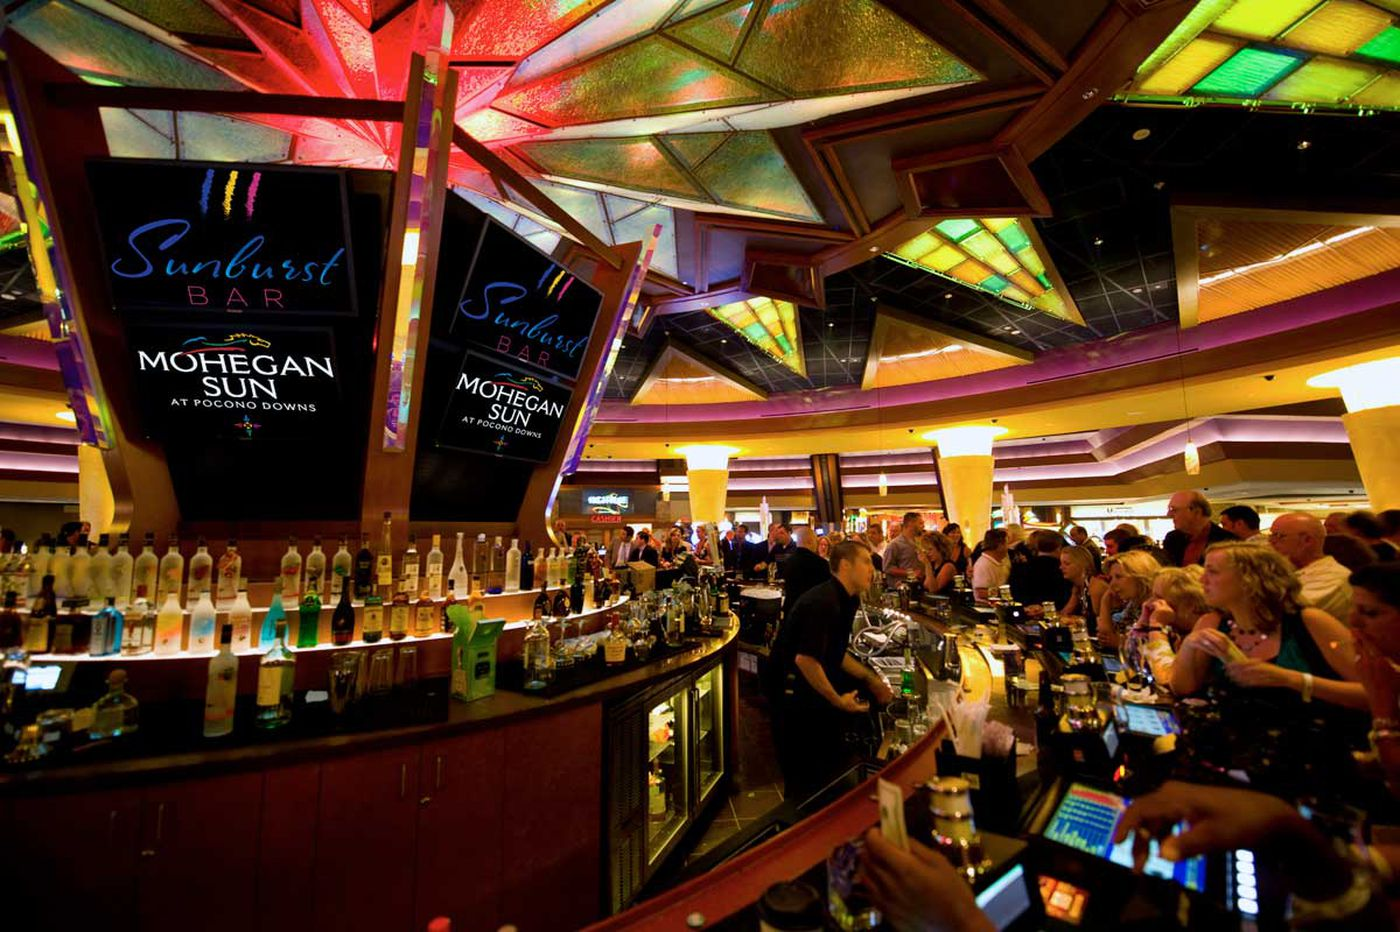 Tight labor market exacts a price: Pa. casino fined $152,500 for failing to hire enough security